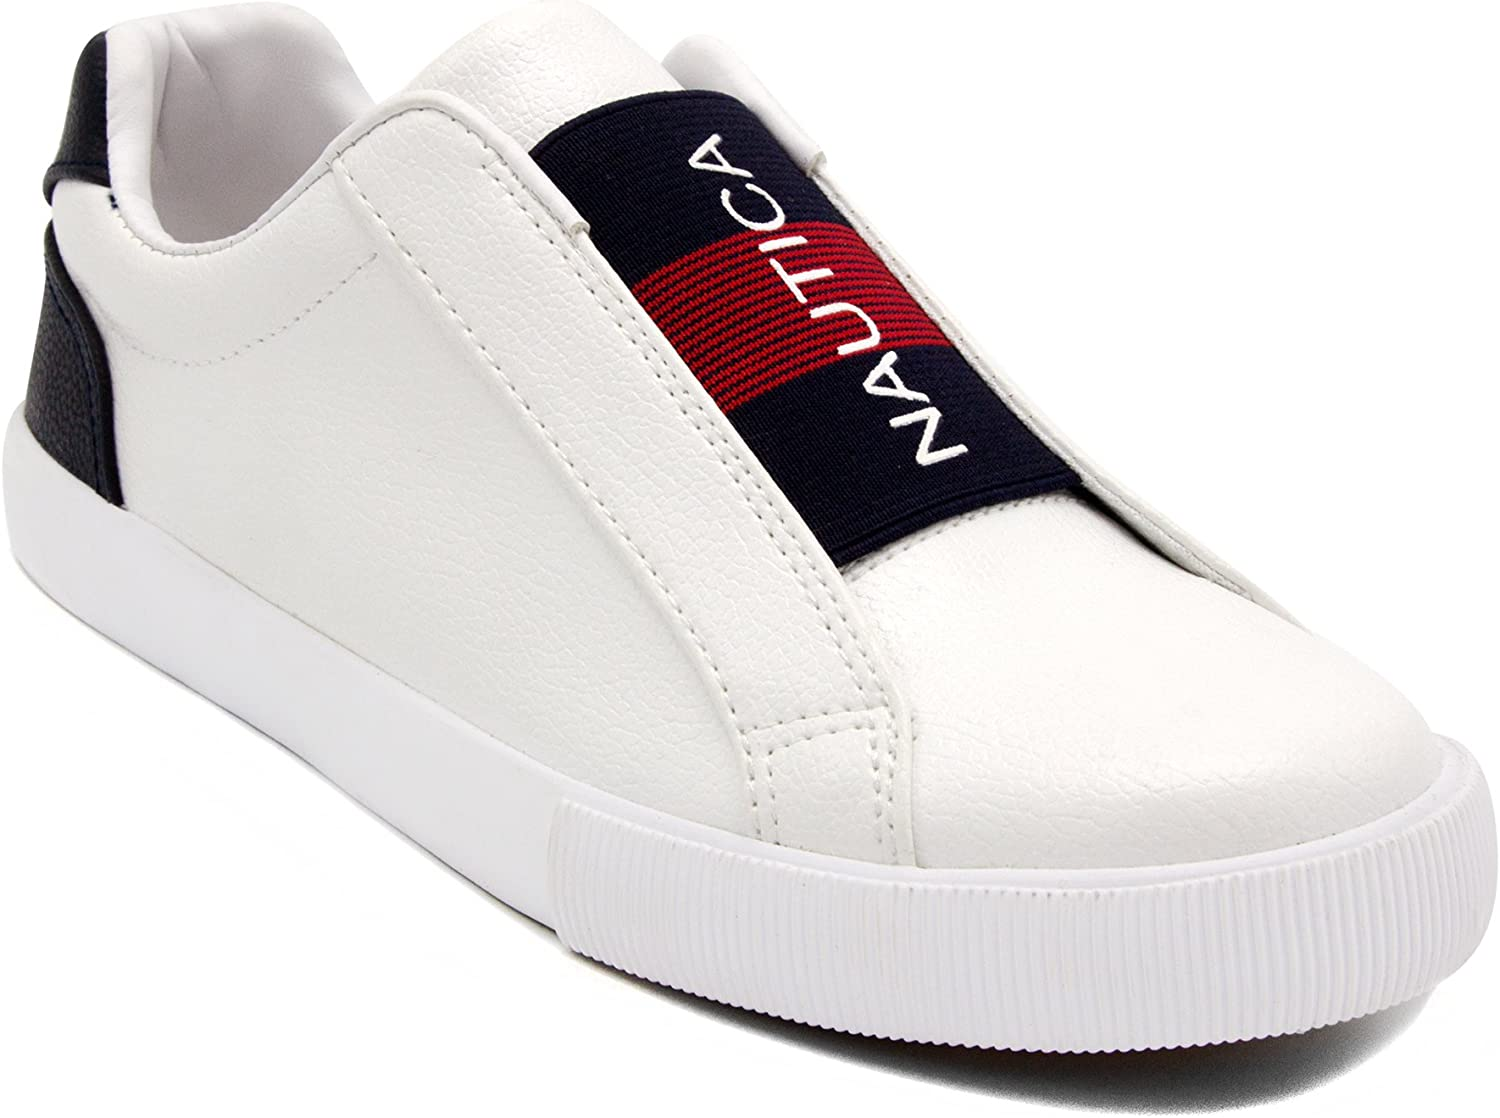 Nautica Steam Women Fashion Sneaker Casual shoes (Lace-Up Slip-on)